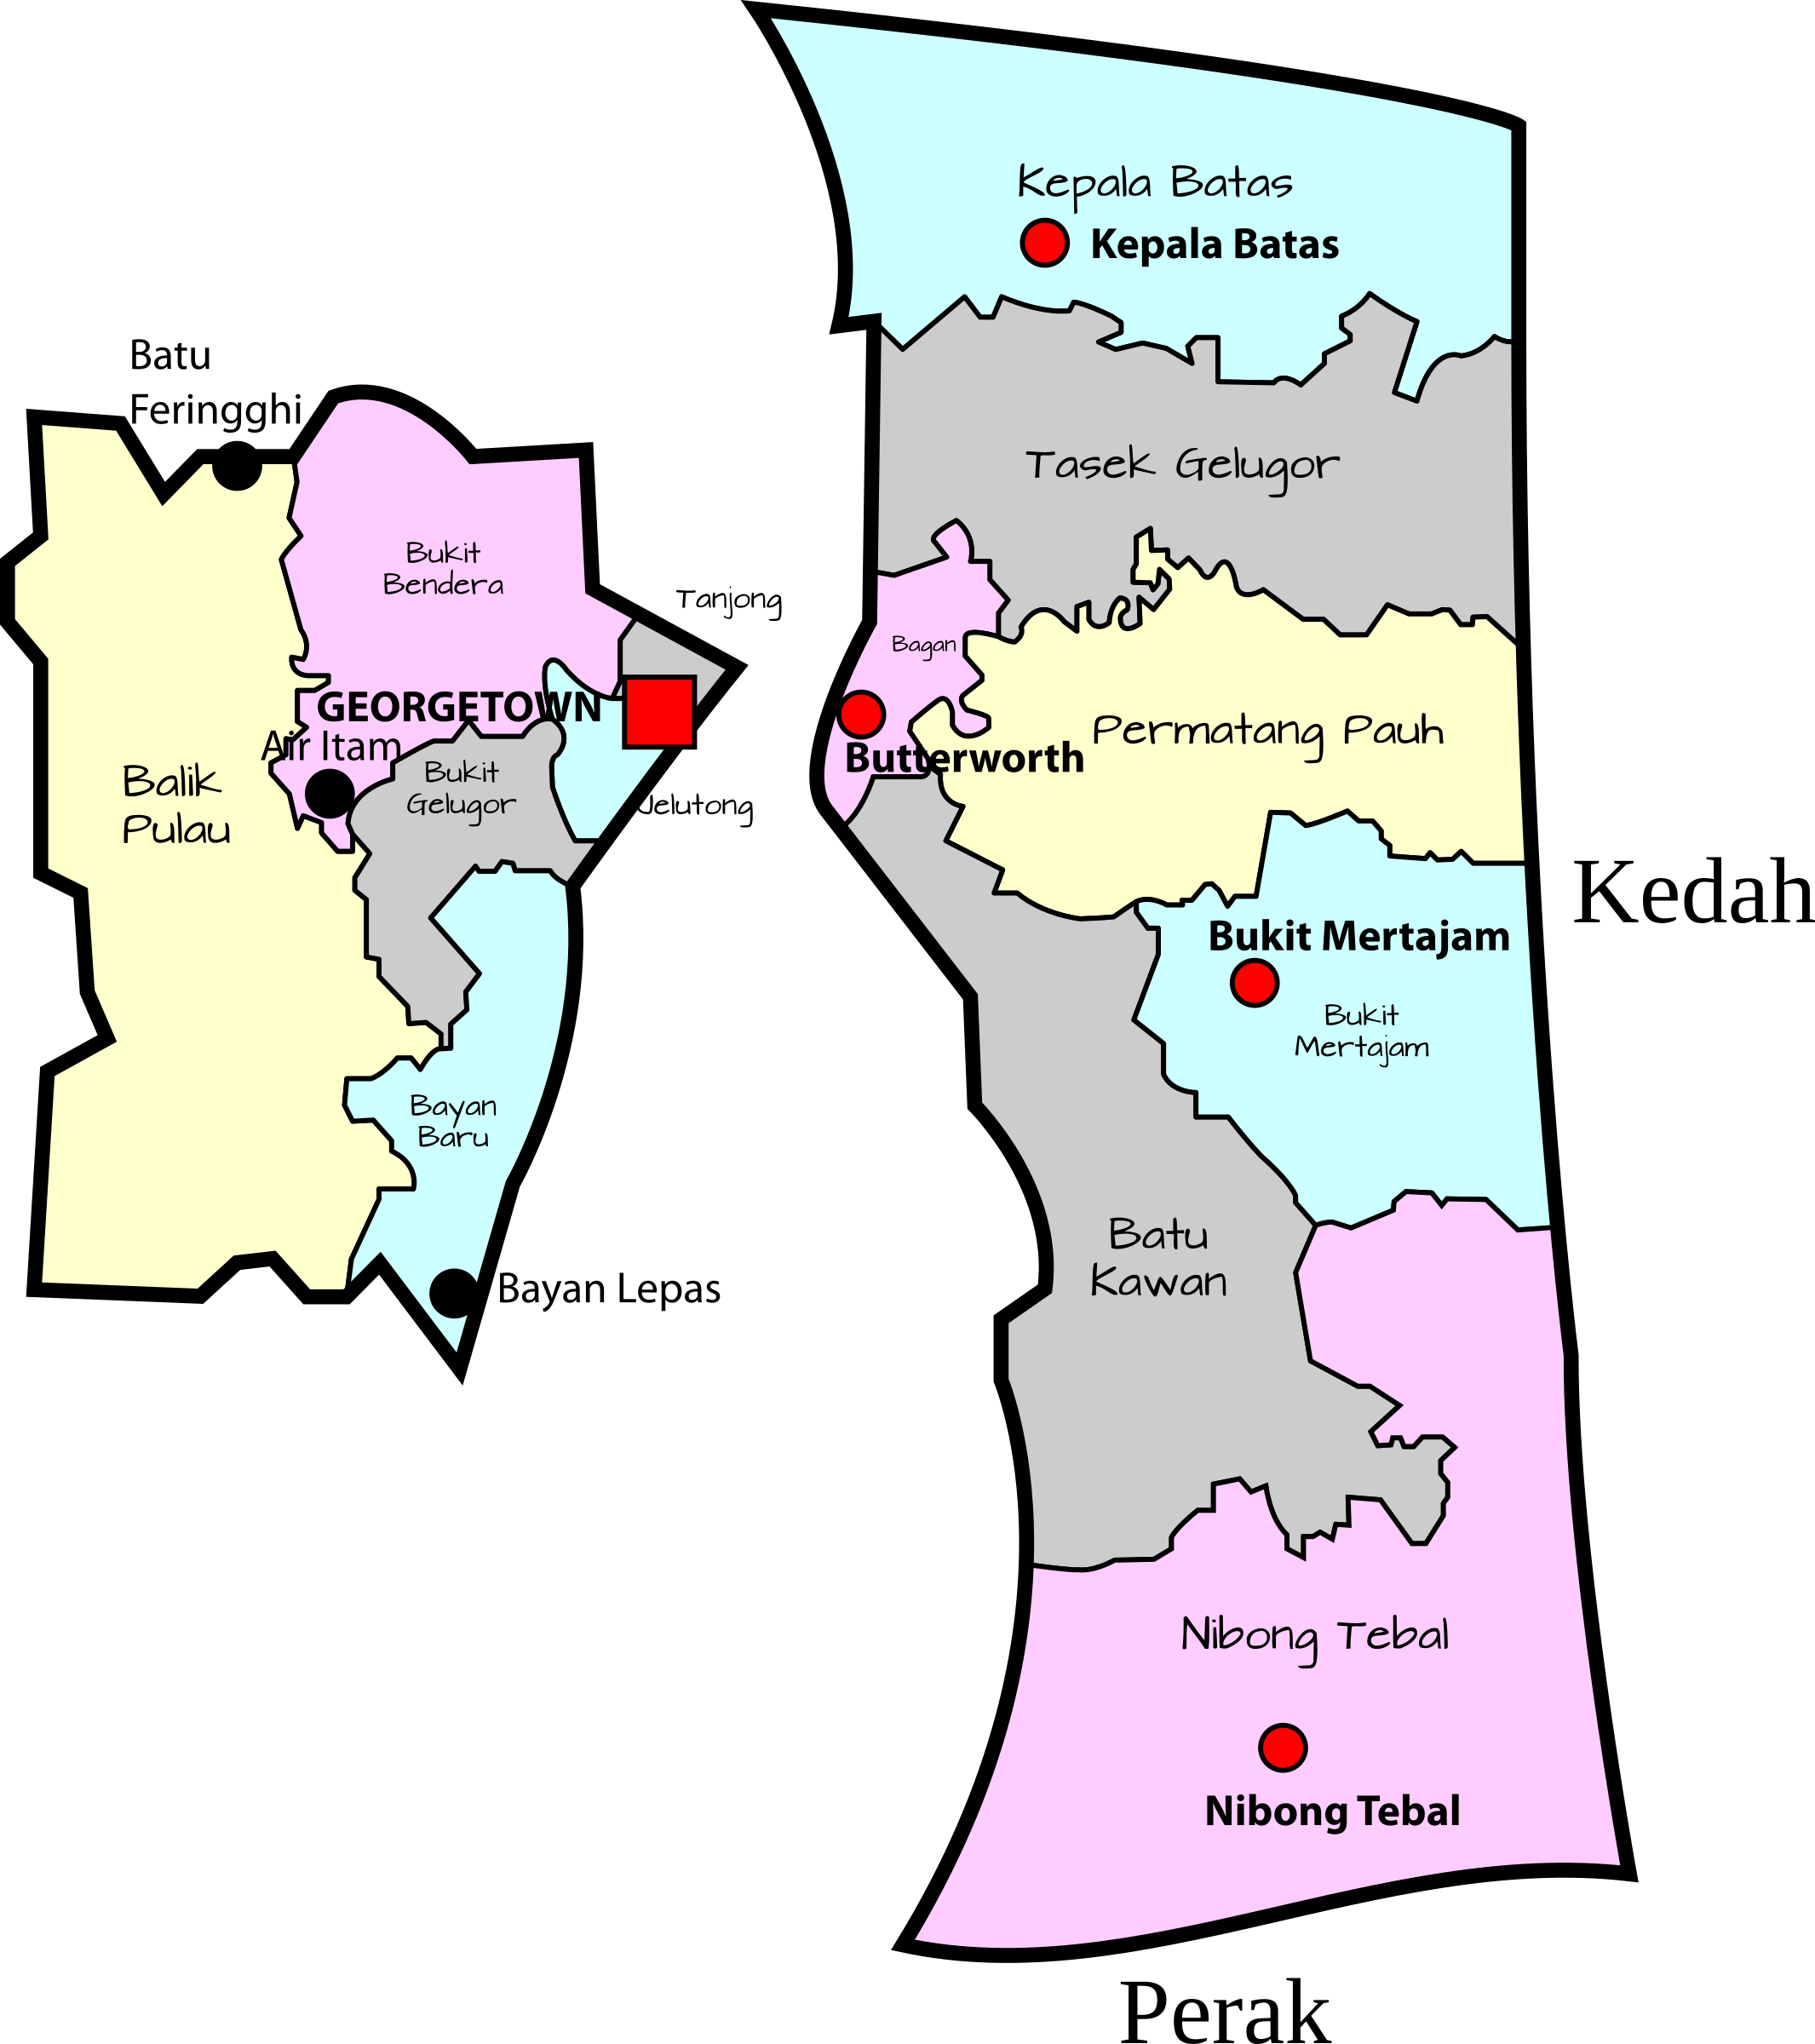 Parliamentary map of penang. Politics clipart gerrymandering